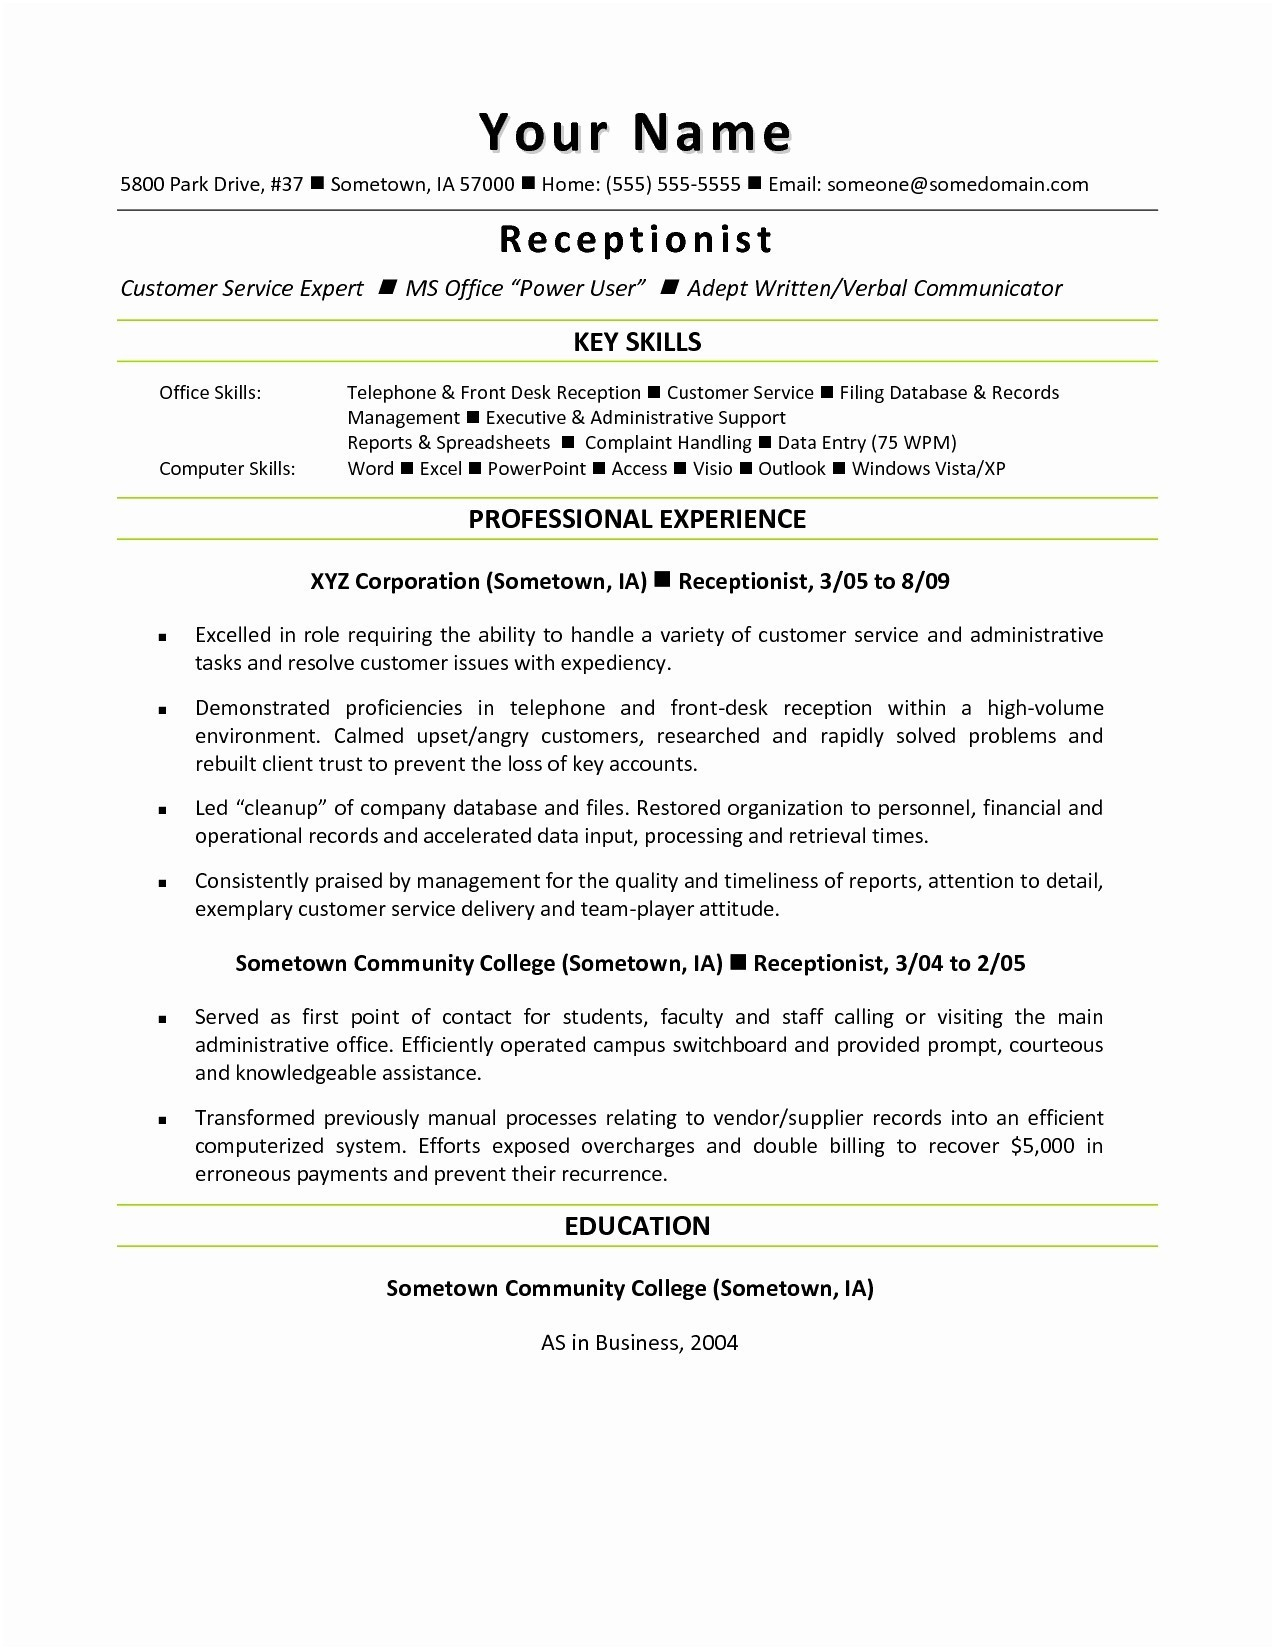 Fax Cover Letter Template Word - Resume Microsoft Word Fresh Resume Mail format Sample Fresh